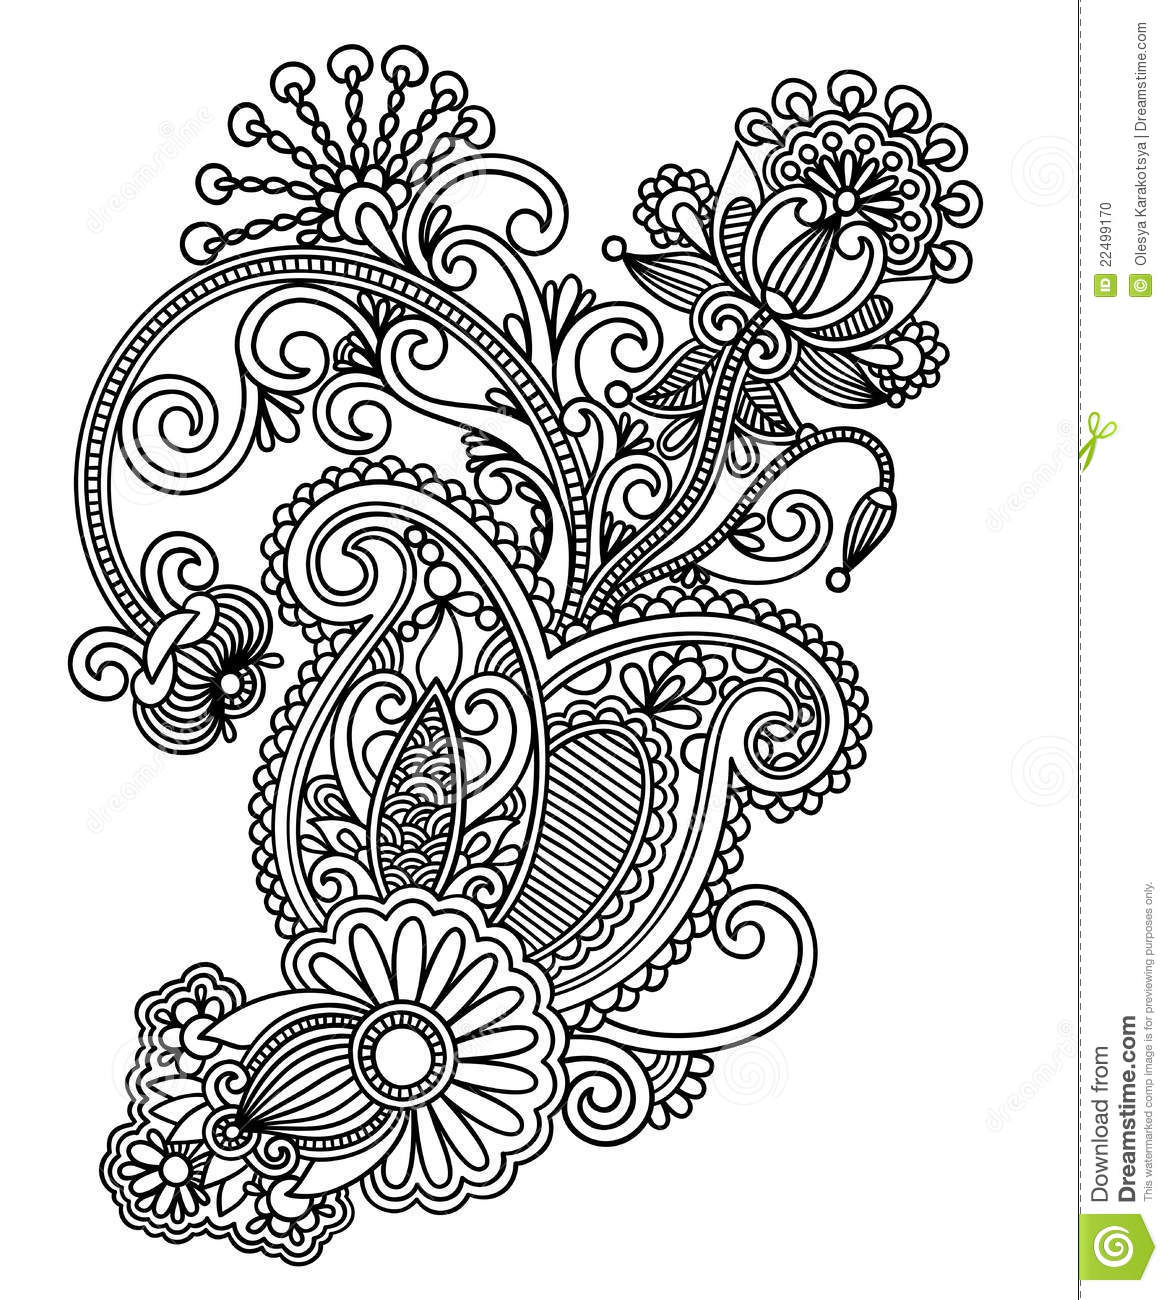 Floral Art Line Design : Line art ornate flower design stock vector illustration